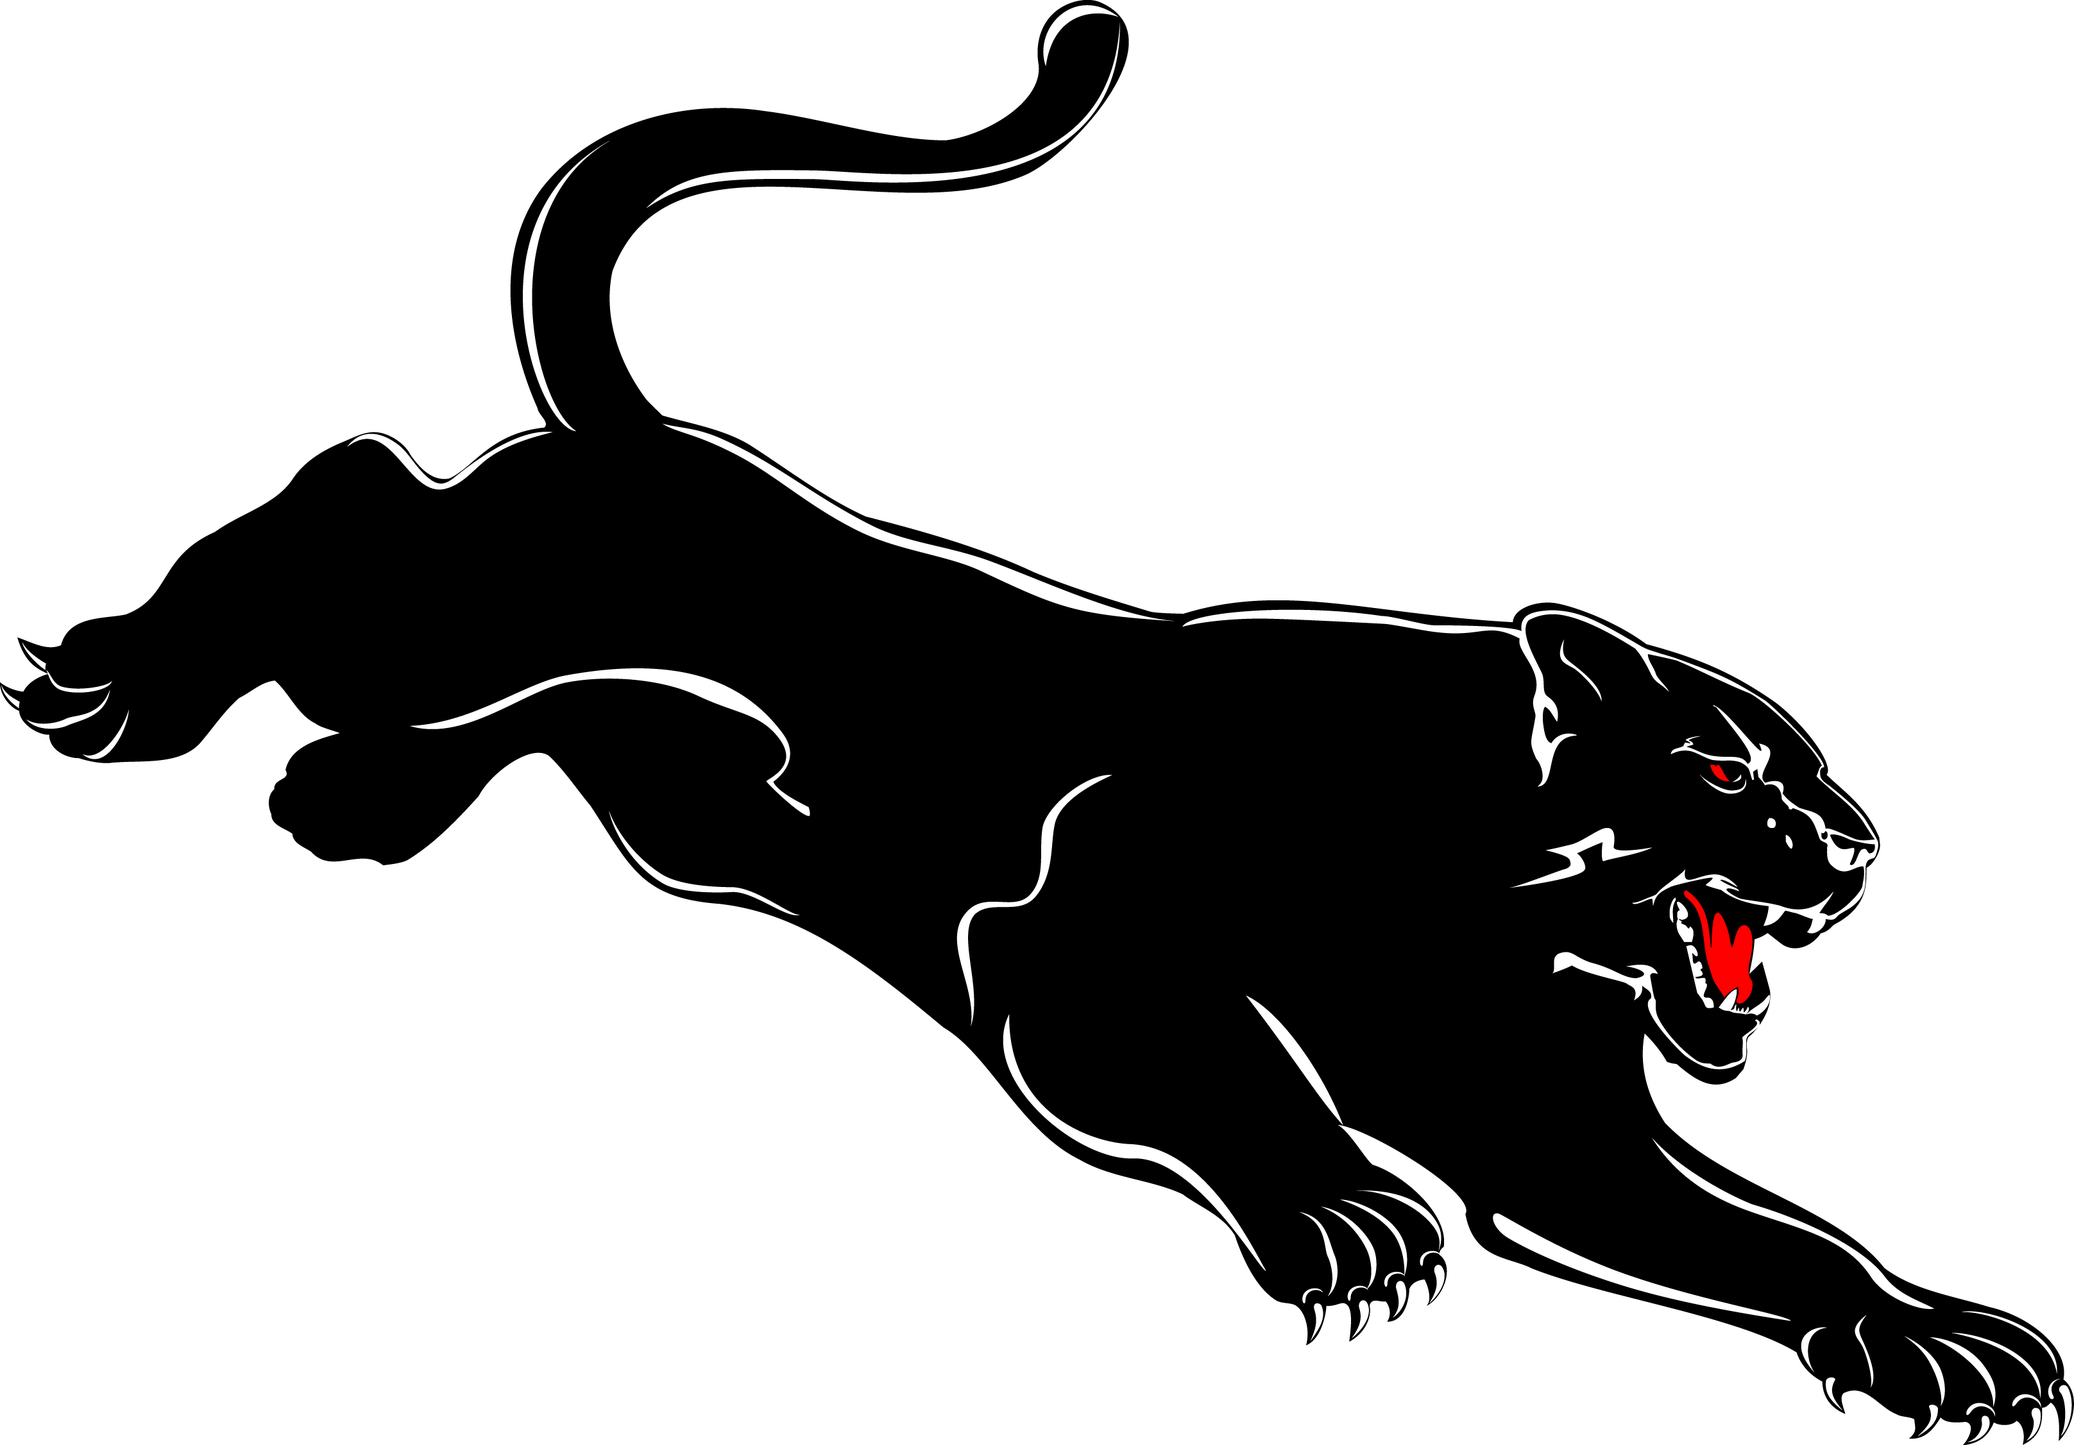 Panther Claws Clipart - Clipart Kid